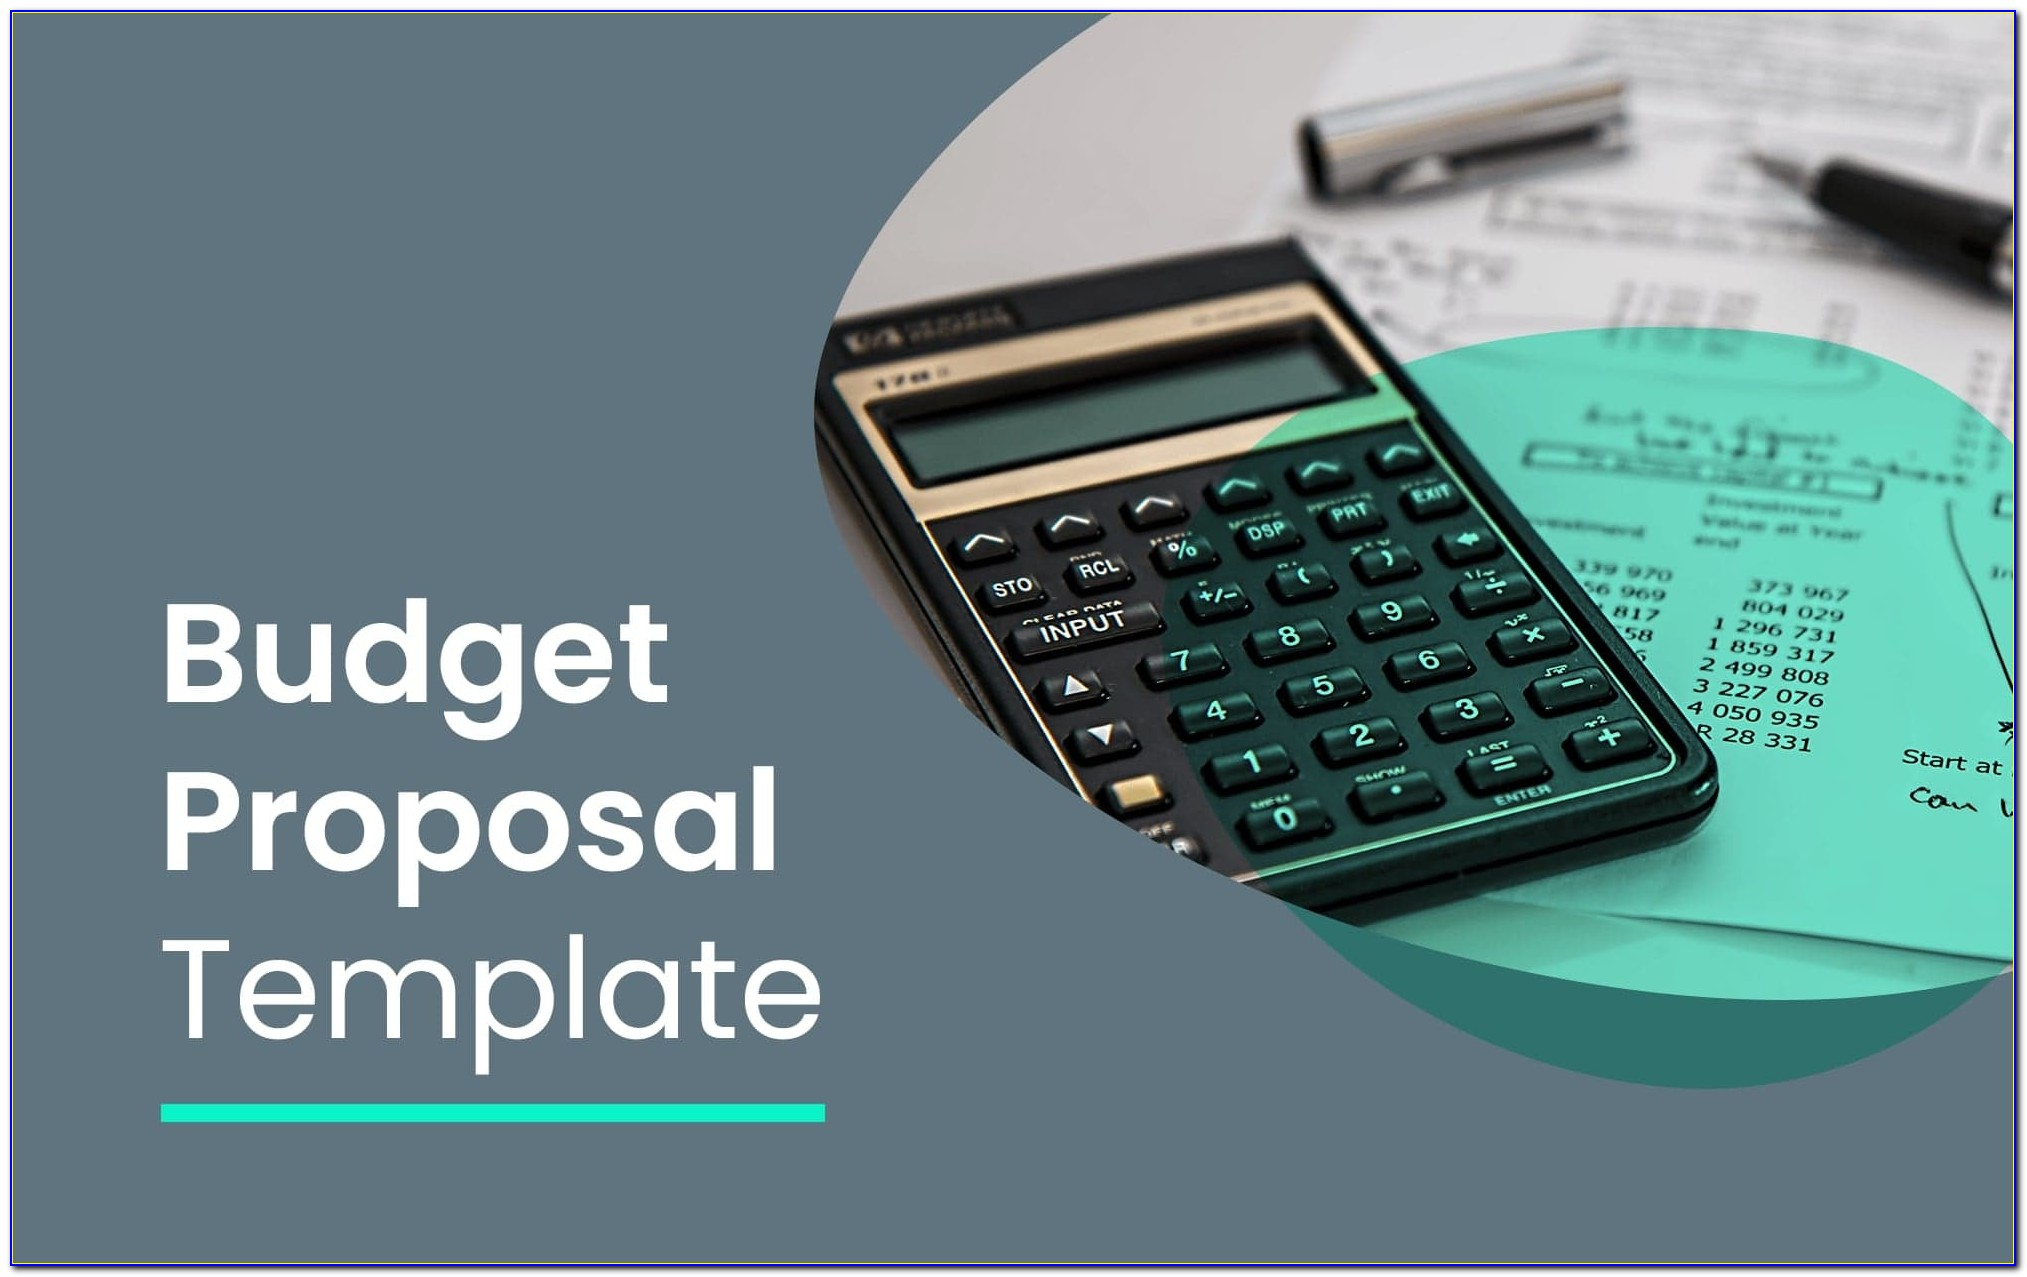 Budget Form For Small Business